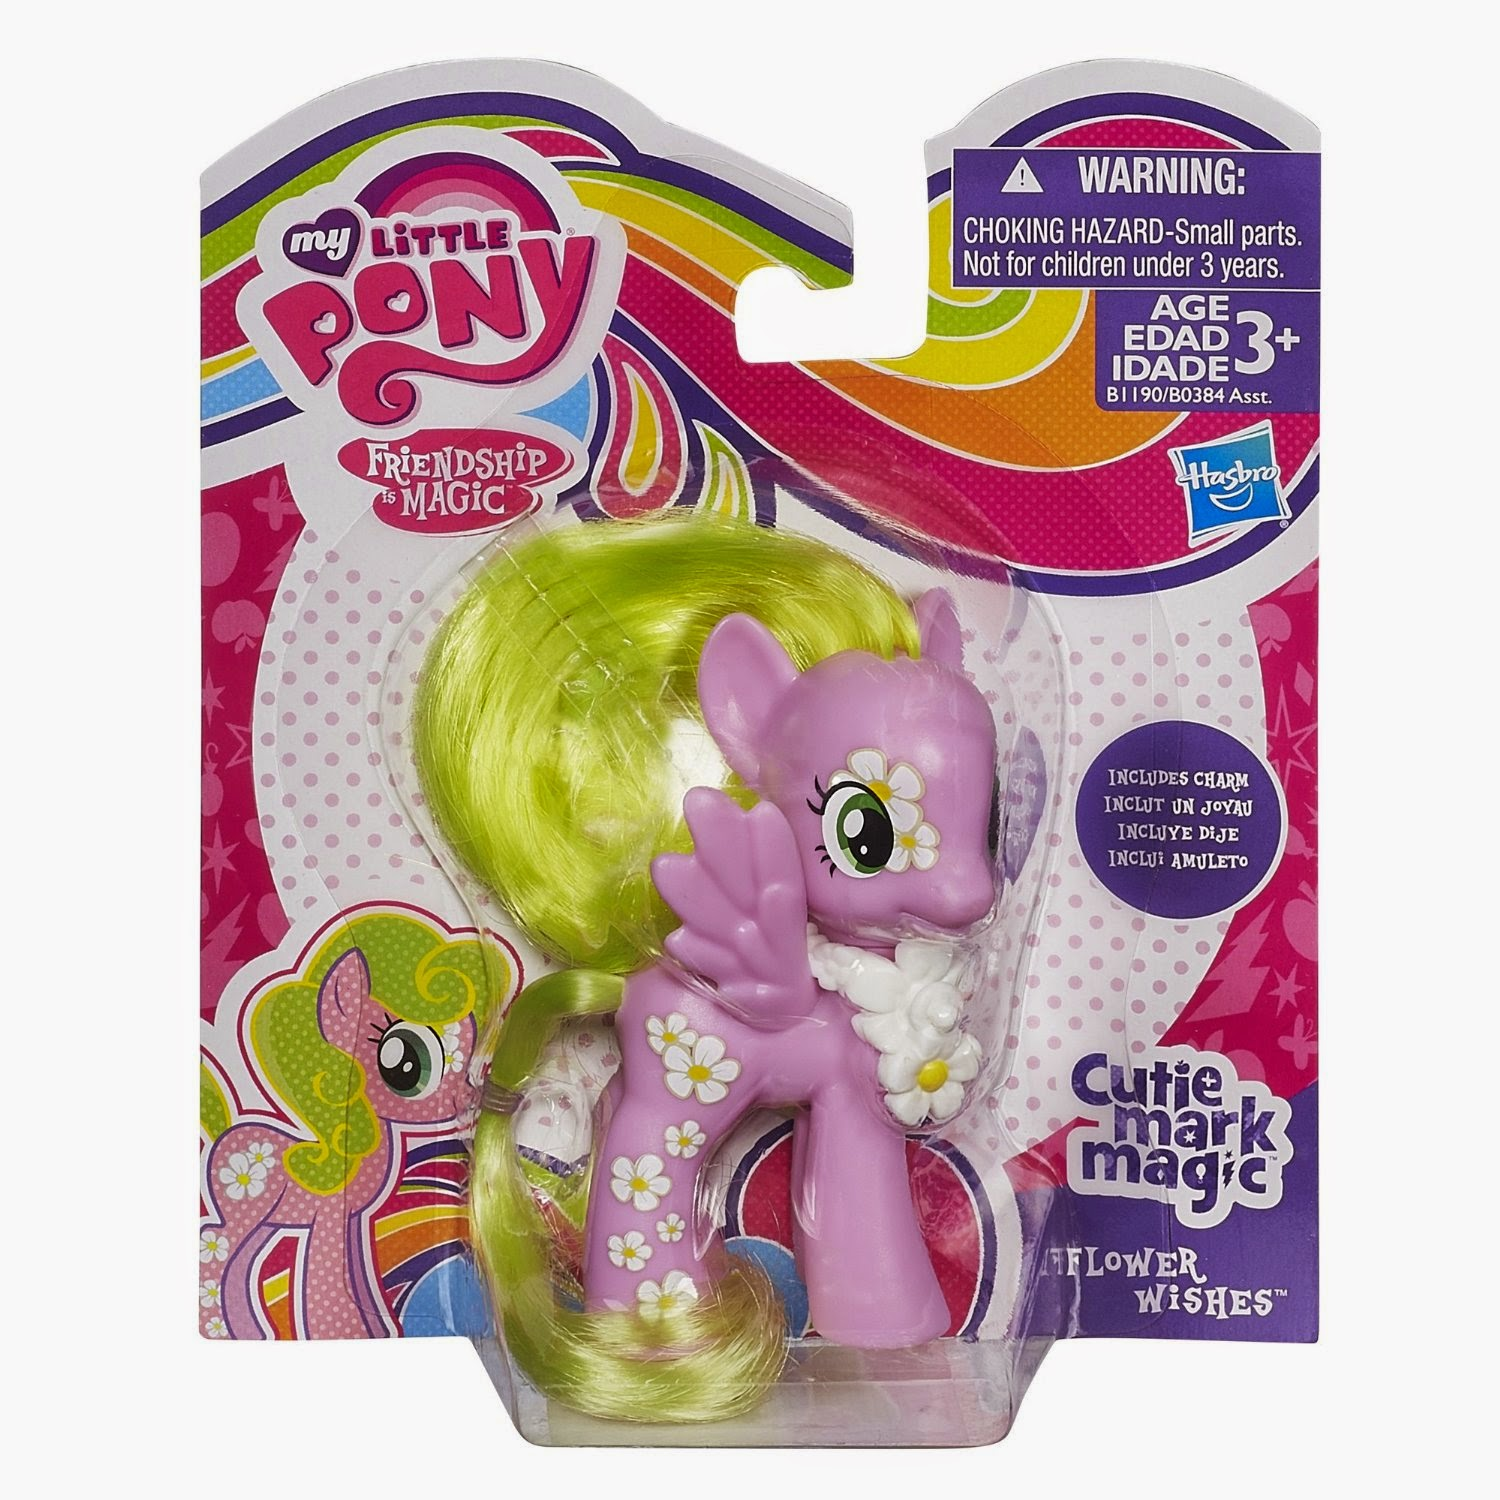 Images found of Flower Wishes Cutie Mark Magic Brushable ... Flower Wishes Mlp